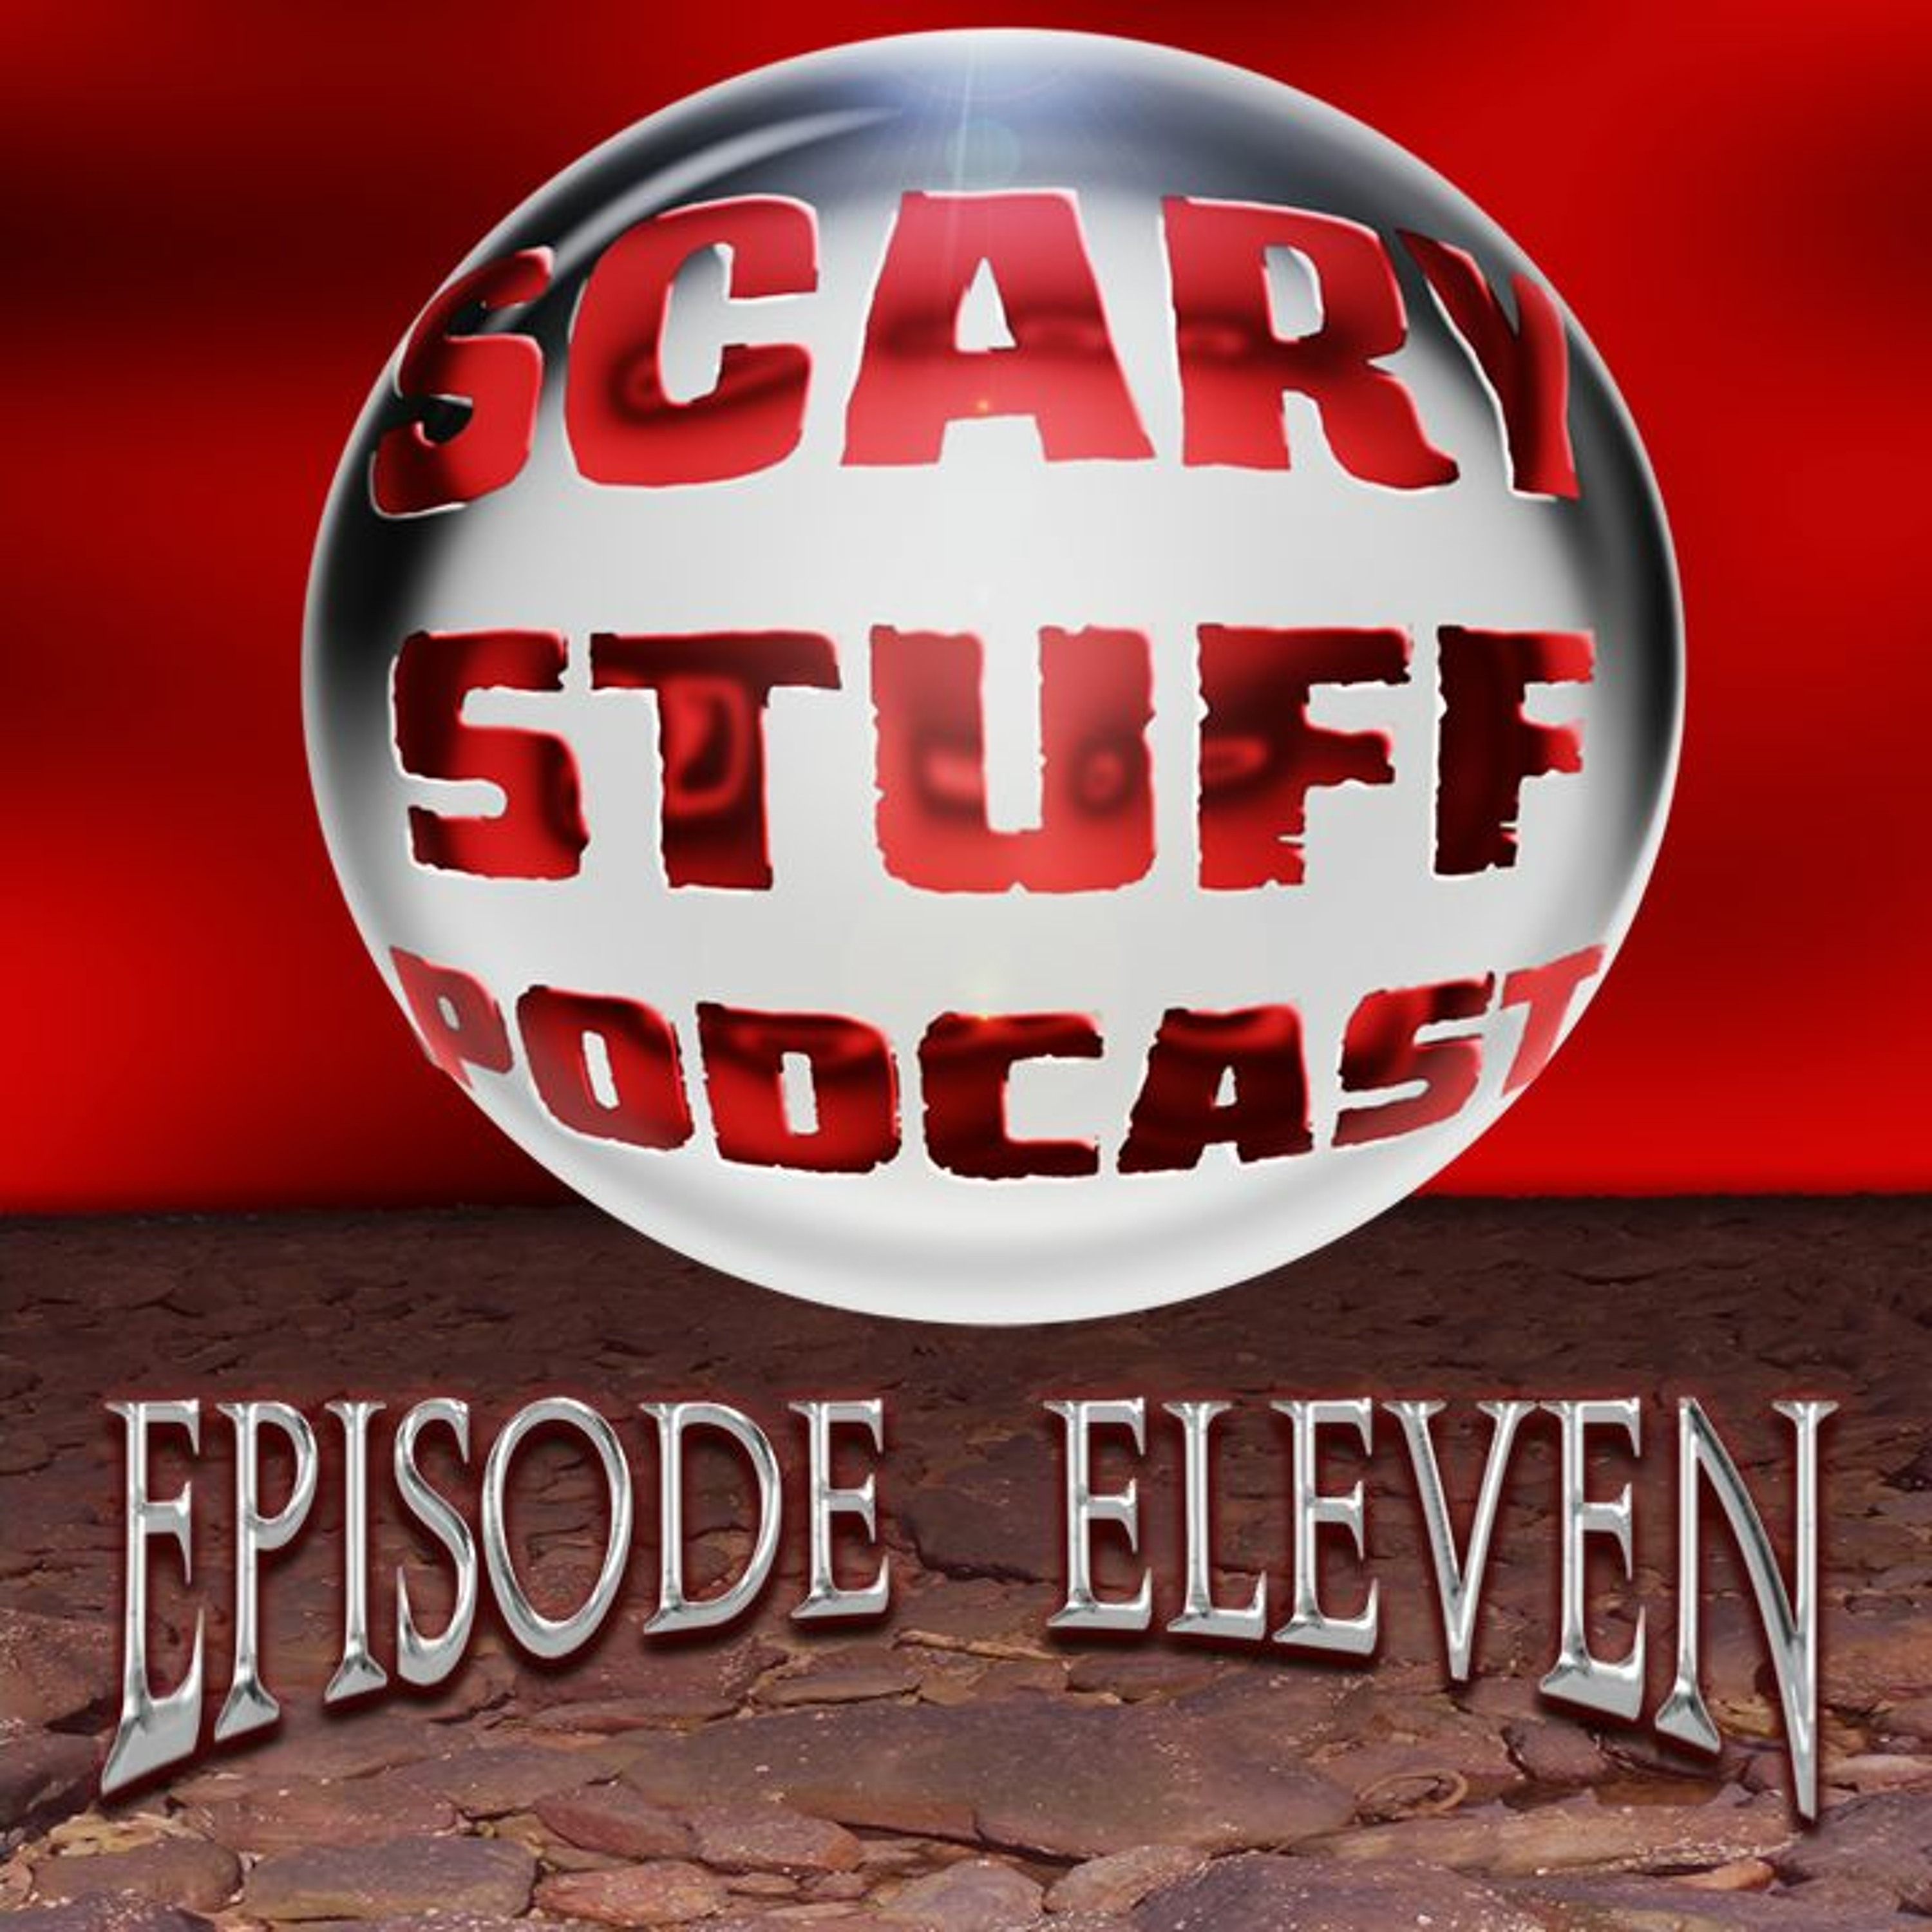 Episode 11: All Things Bright and Spherical (The Phantasm franchise)